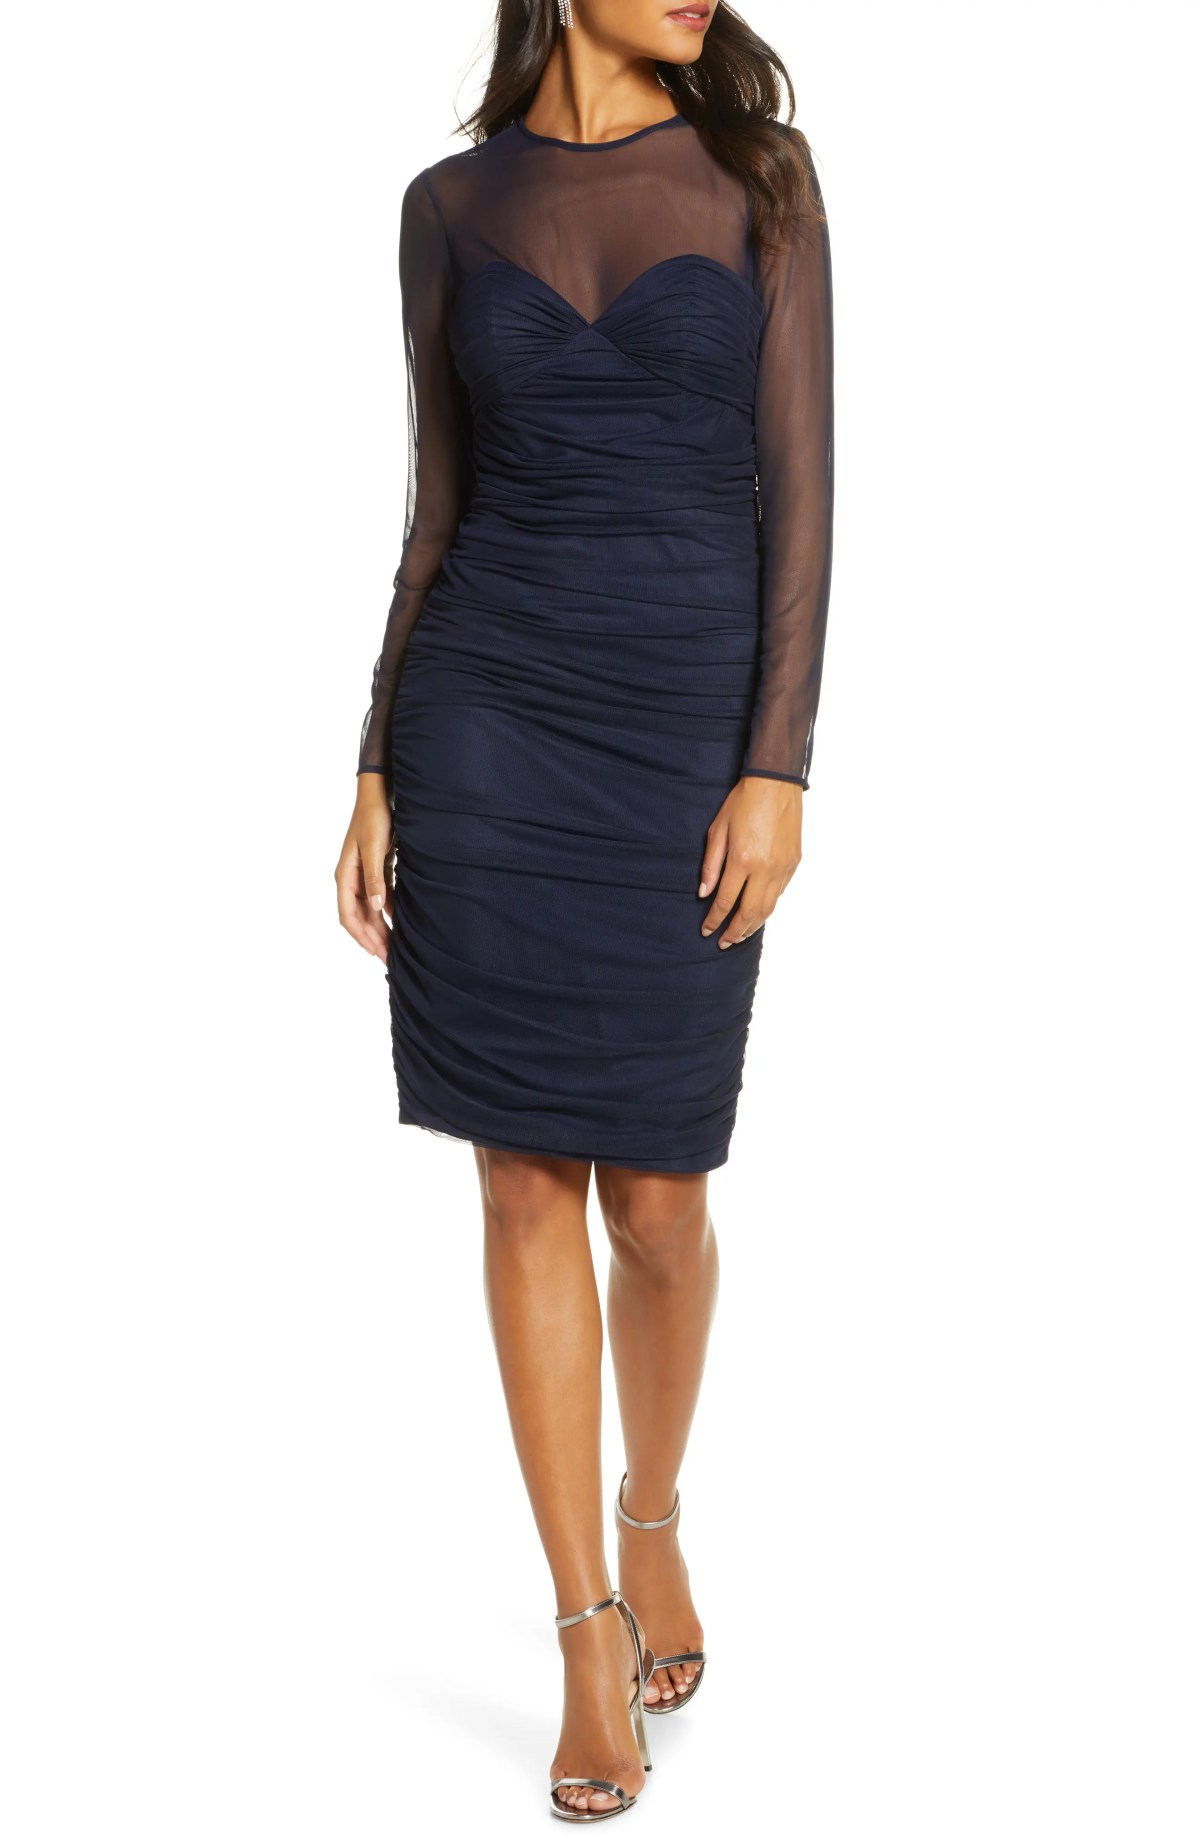 ELIZA J Ruched Long Sleeve Illusion Mesh Cocktail Dress, Main, color, NAVY